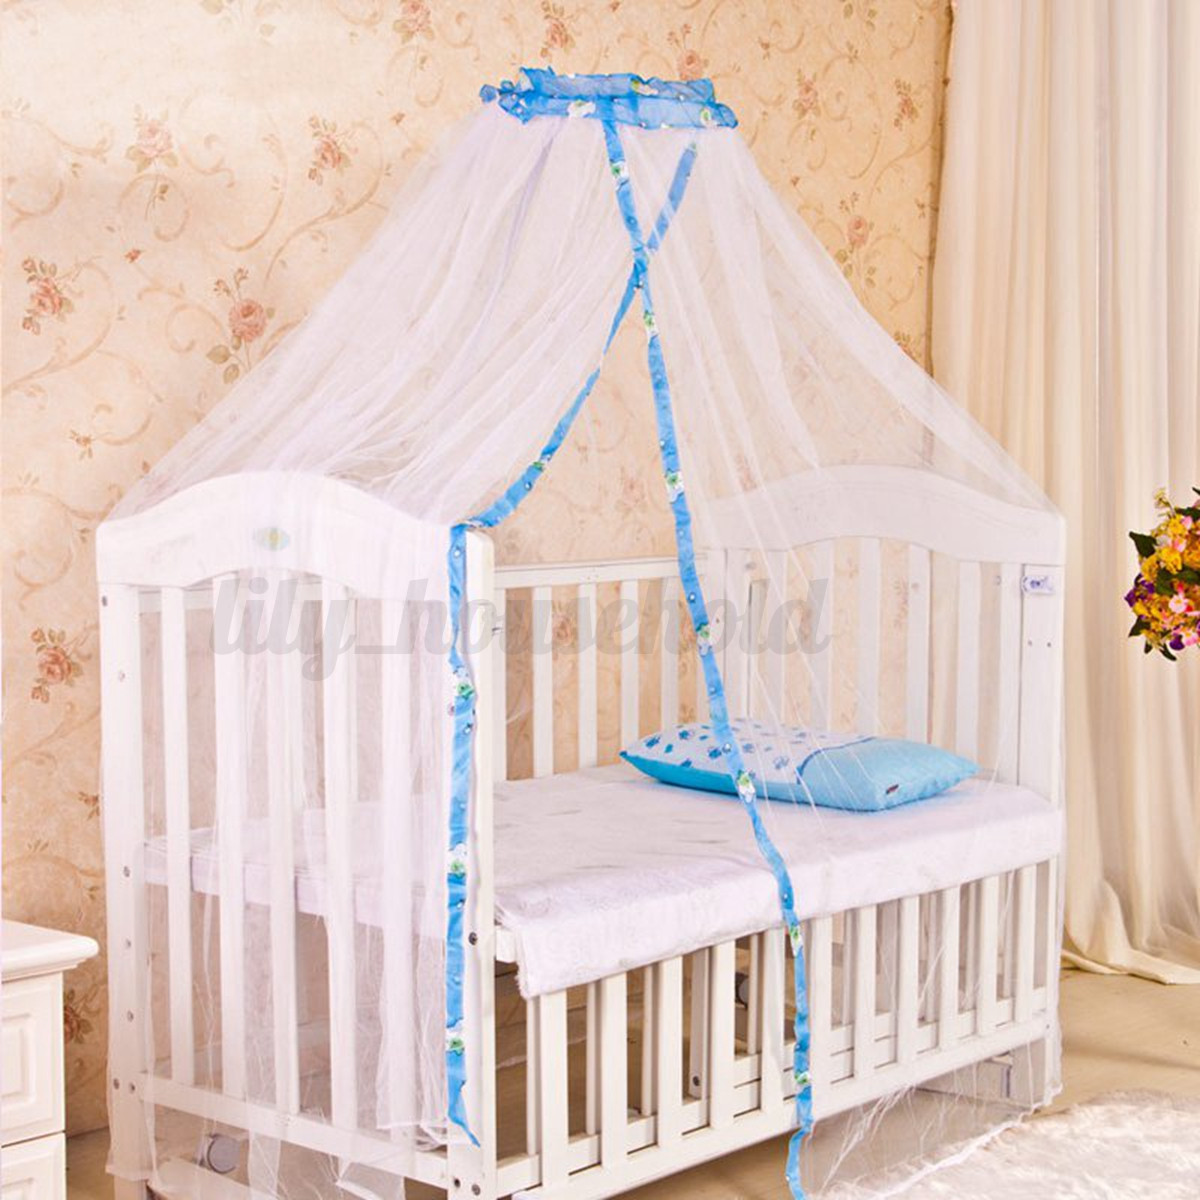 baby moskitonetz himmel babybett insektenschutz insektenschutz gelb blau ebay. Black Bedroom Furniture Sets. Home Design Ideas